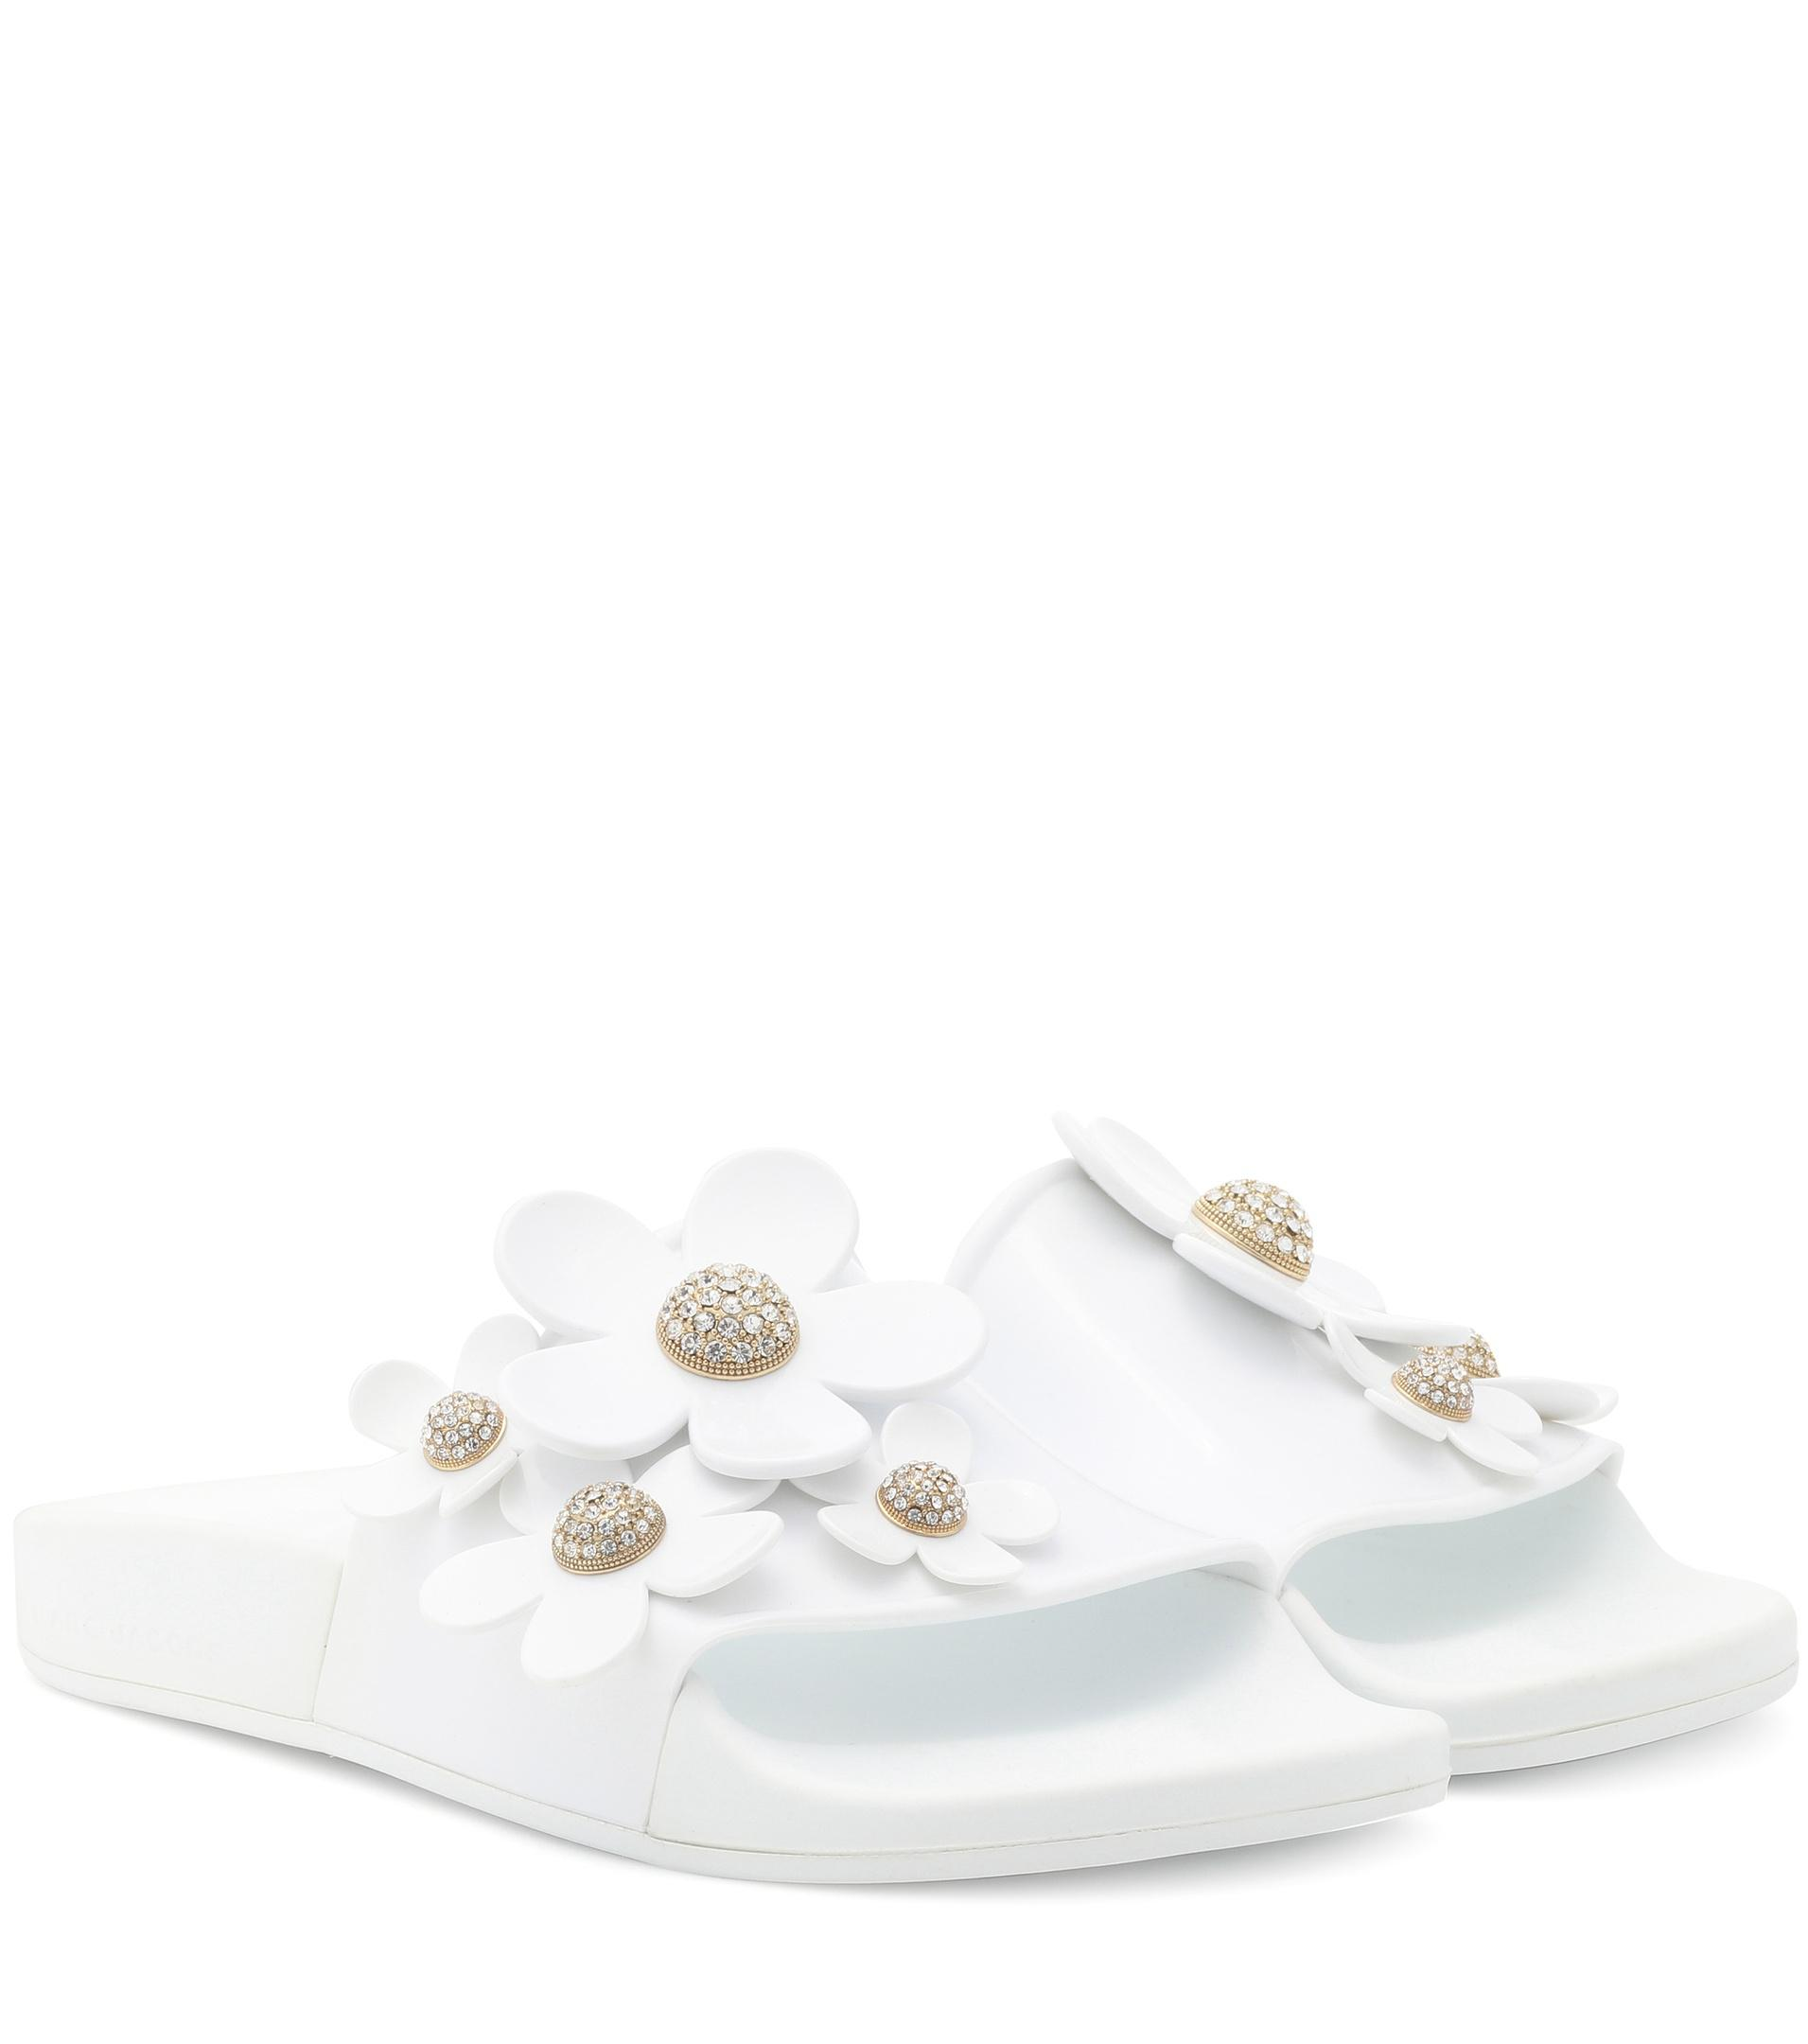 4cab53841dabdf Lyst - Marc Jacobs Embellished Jelly Slides in White - Save 66%